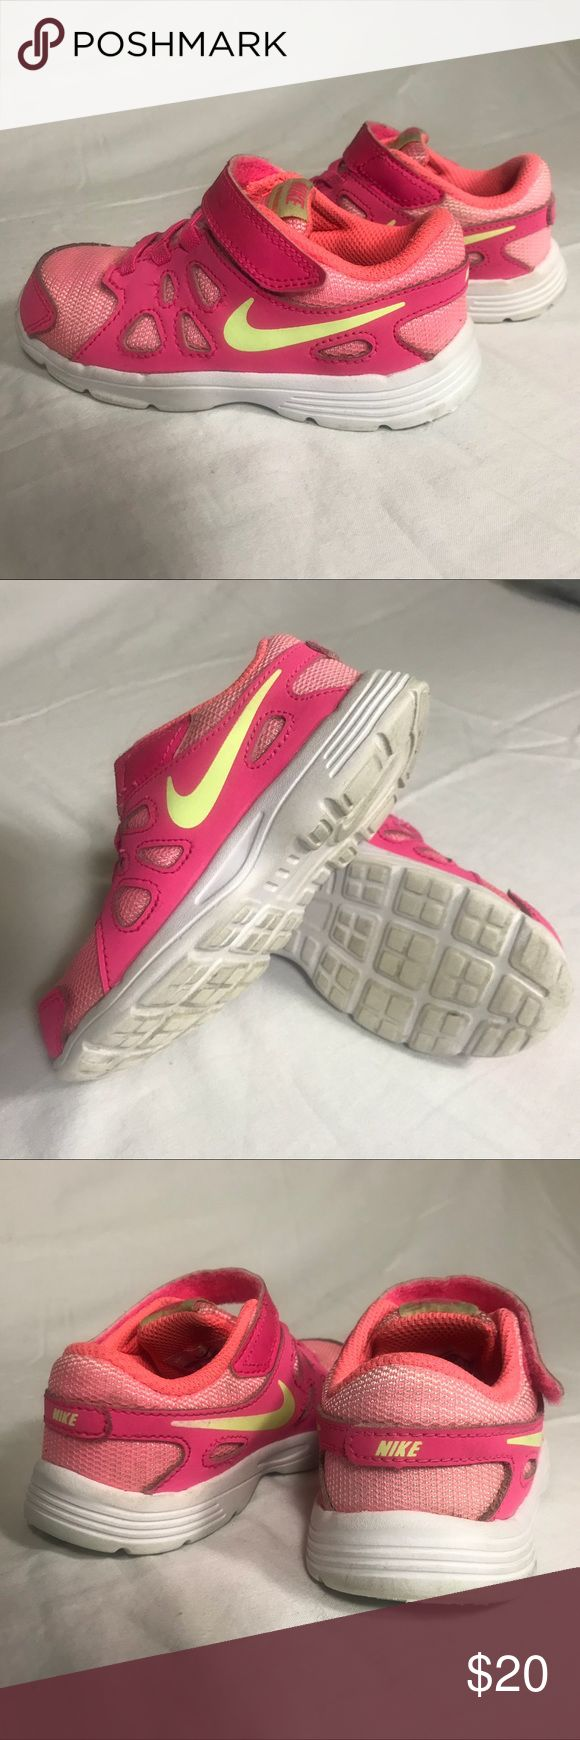 NIKE REVOLUTION 2 Girls Sz 9c Pre-owned Nike Revolution 2 TDV Girls Kids Running Shoes Pink Size 9c Good condition  Offers and bundles welcomed! Have a blessed day! Nike Shoes Sneakers